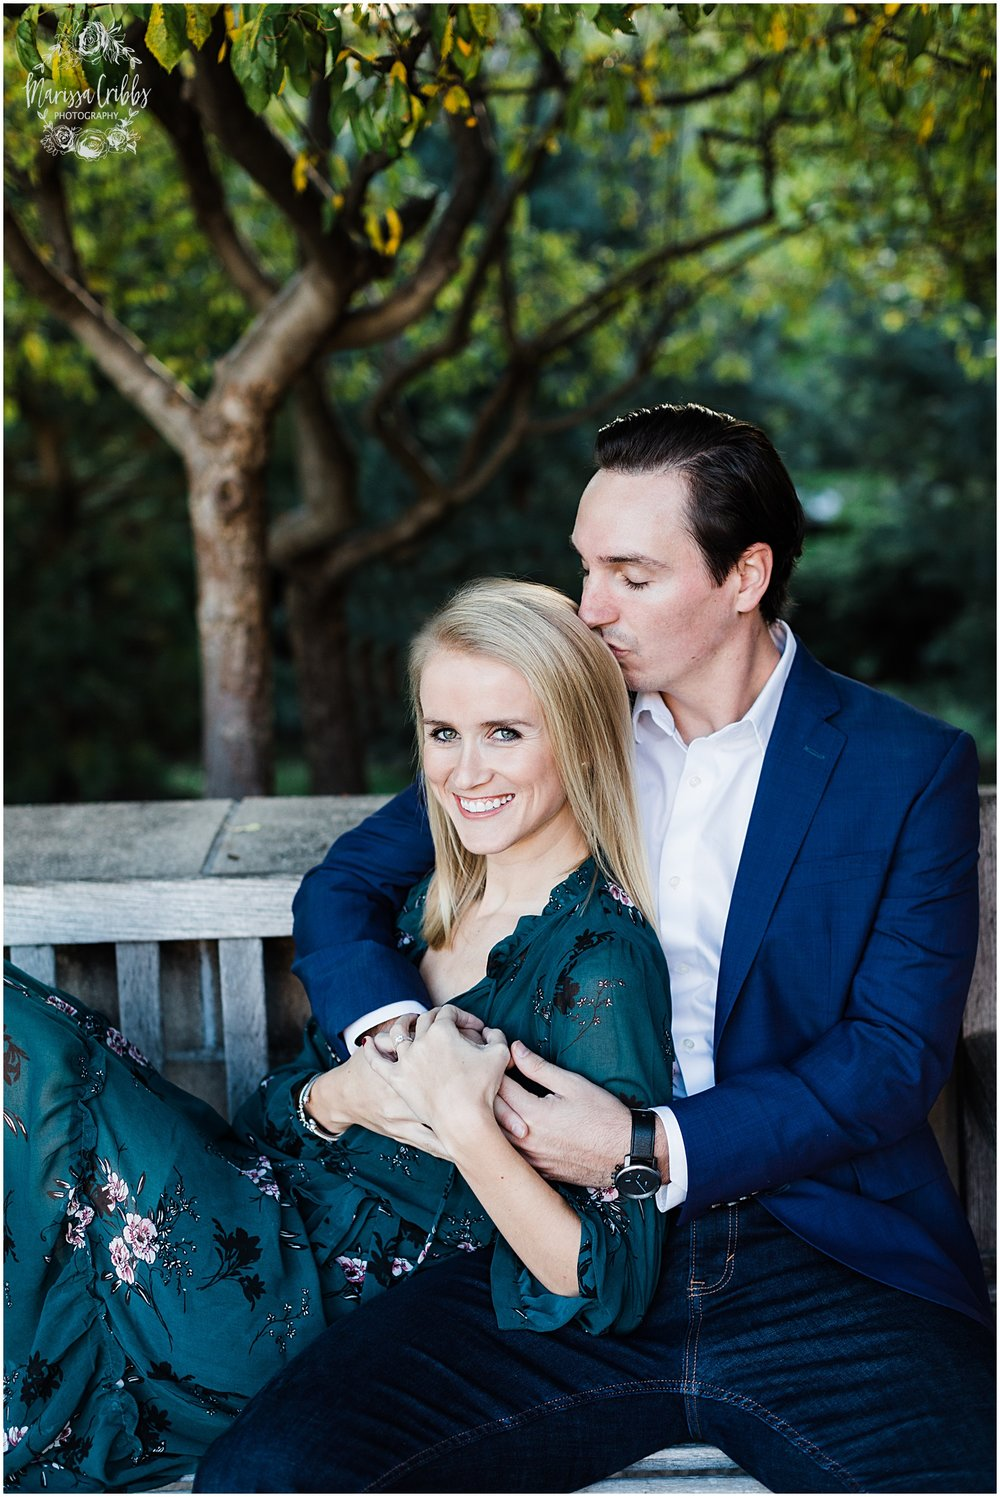 HALEY & CHASE ENGAGED LOOSE PARK & NELSON ATKINS | FALL ENGAGEMENT PHOTOS | MARISSA CRIBBS PHOTOGRAPHY_6870.jpg